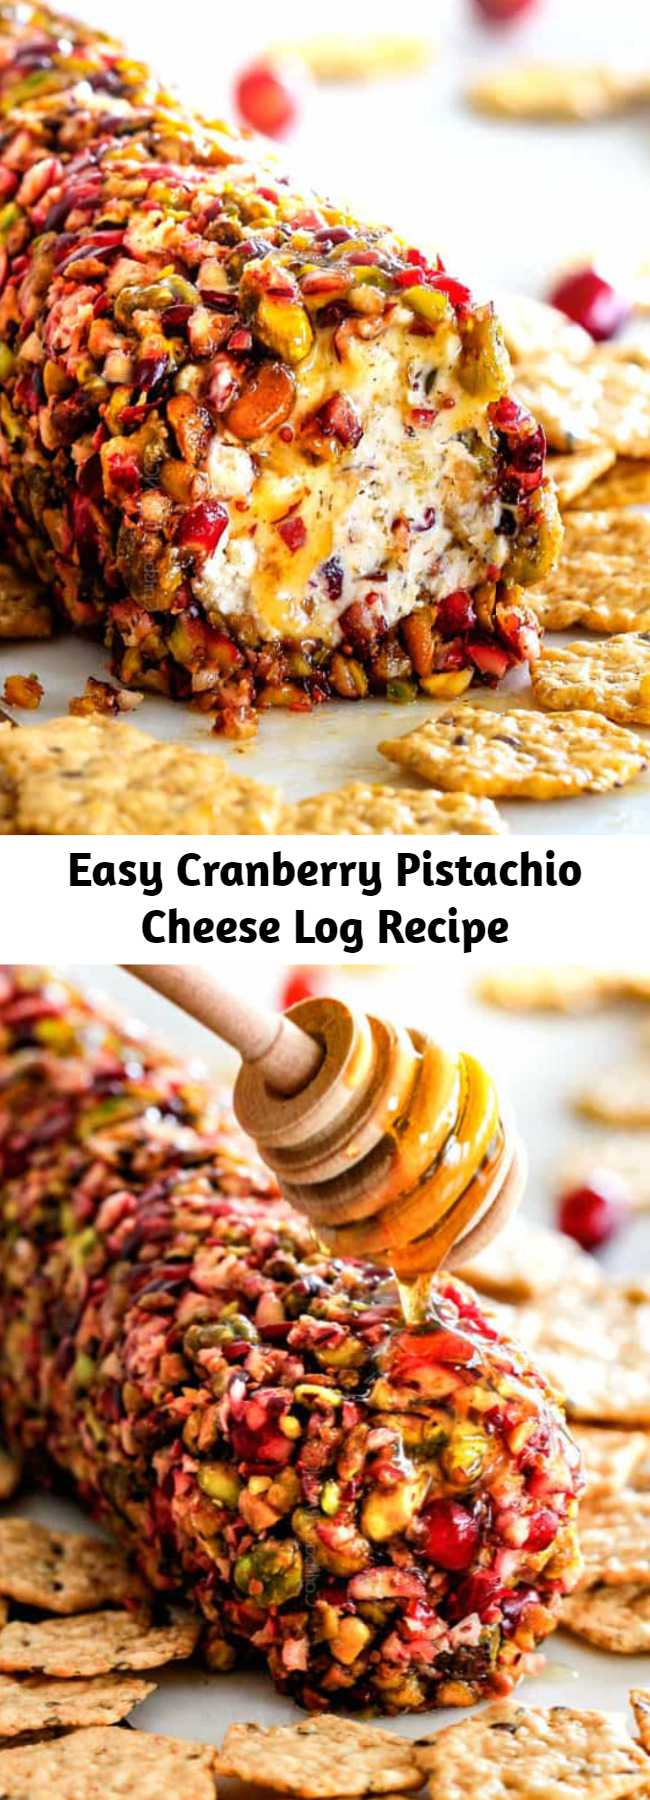 Easy Cranberry Pistachio Cheese Log Recipe - 10 Minute prep creamy, sweet and tangy Cranberry Pistachio Cheese Log is the EASIEST yet most impressive appetizer you will ever make! This festive goat cheese log can be made DAYS in advance so it's the perfect stress-free appetizer for Thanksgiving, Christmas or any holiday party! #appetizer #easyrecipe #easydinner #easydinnerrecipe #recipe #recipeoftheday #Thanksgiving #recipeideas #recipeseasy #christmas #christmasrecipes #Thanksgivingrecipes